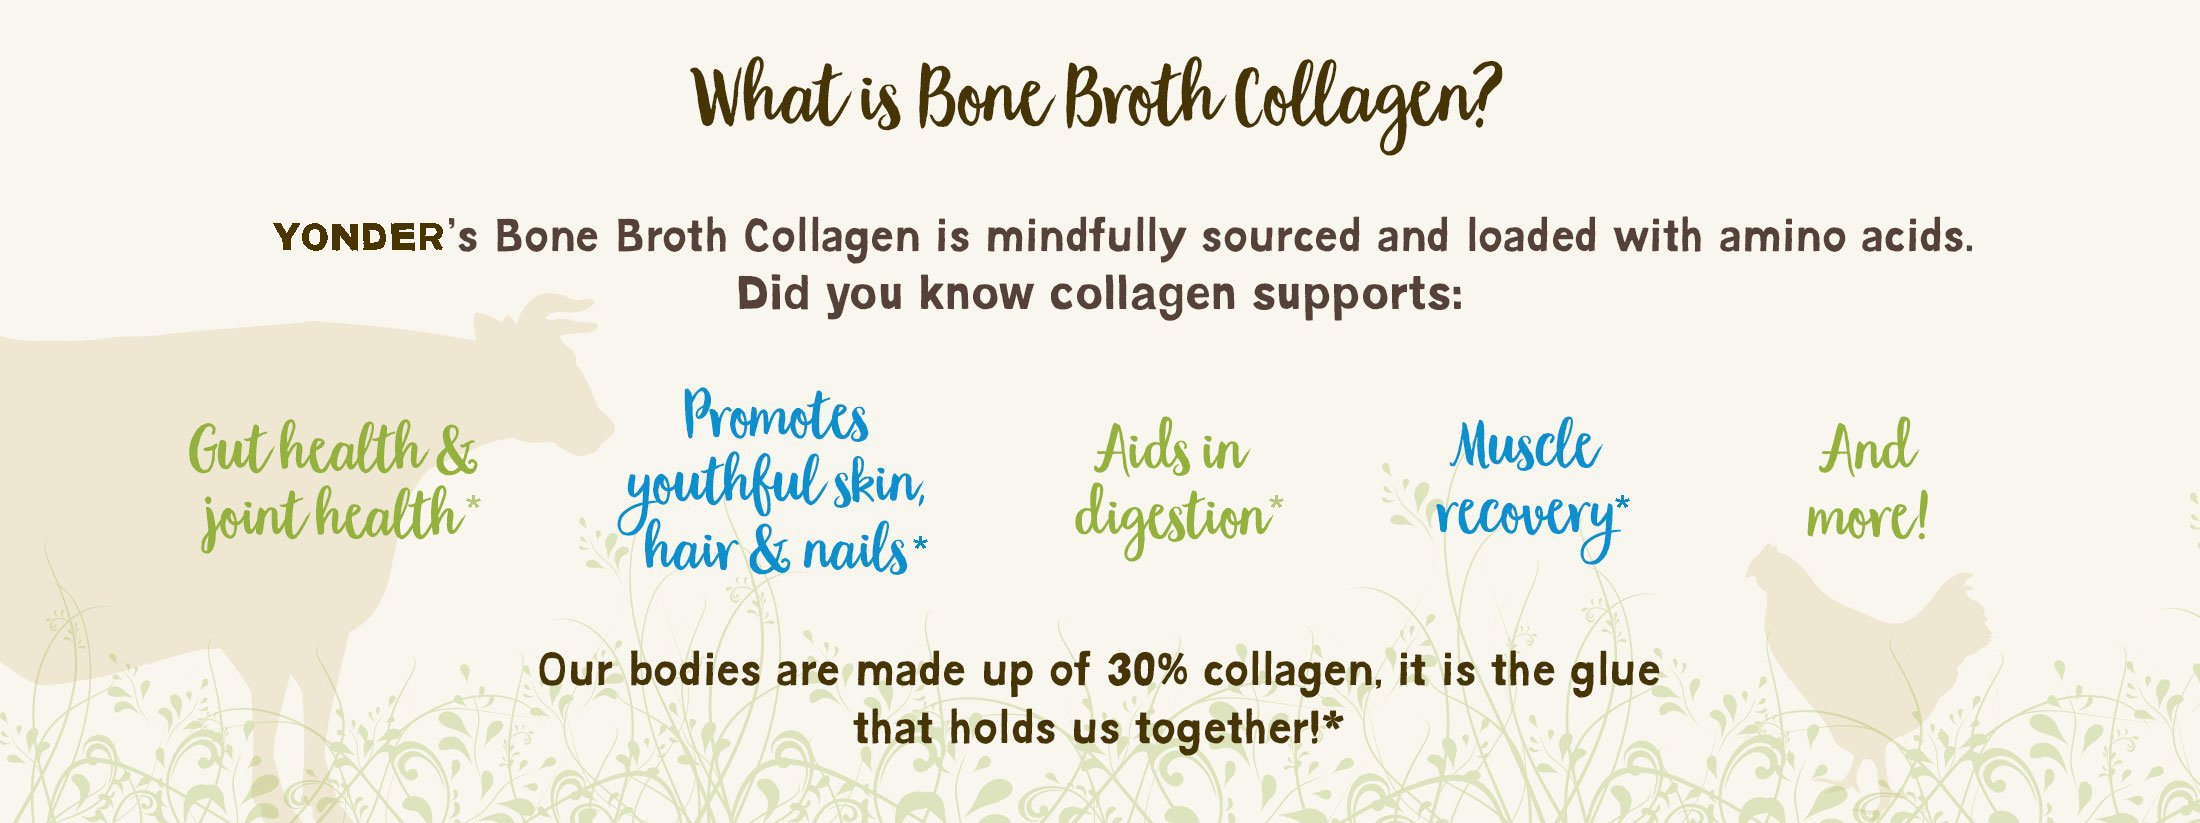 What is Bone Broth?